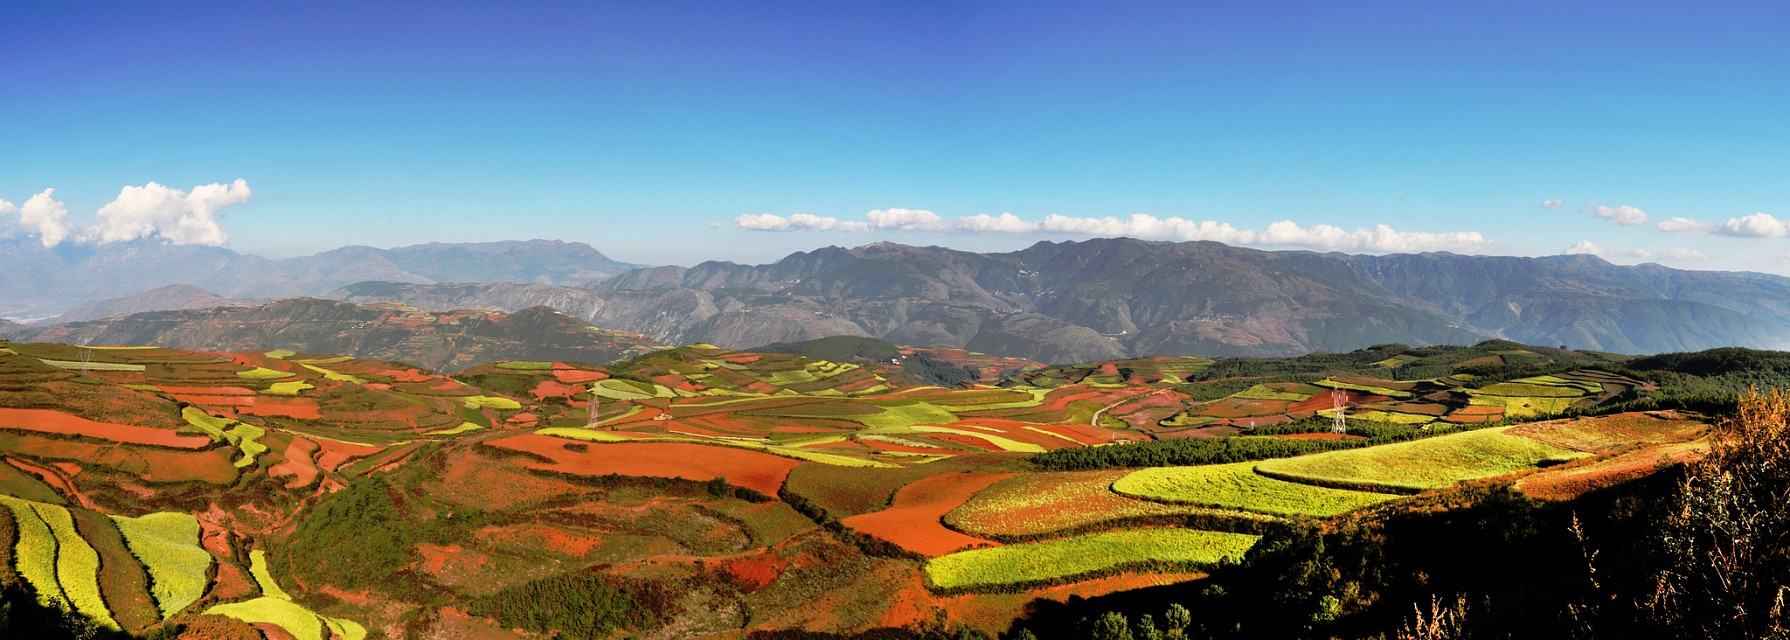 Dongchuan red earth terraces....東川紅土地錦繡園 - Dongchuan